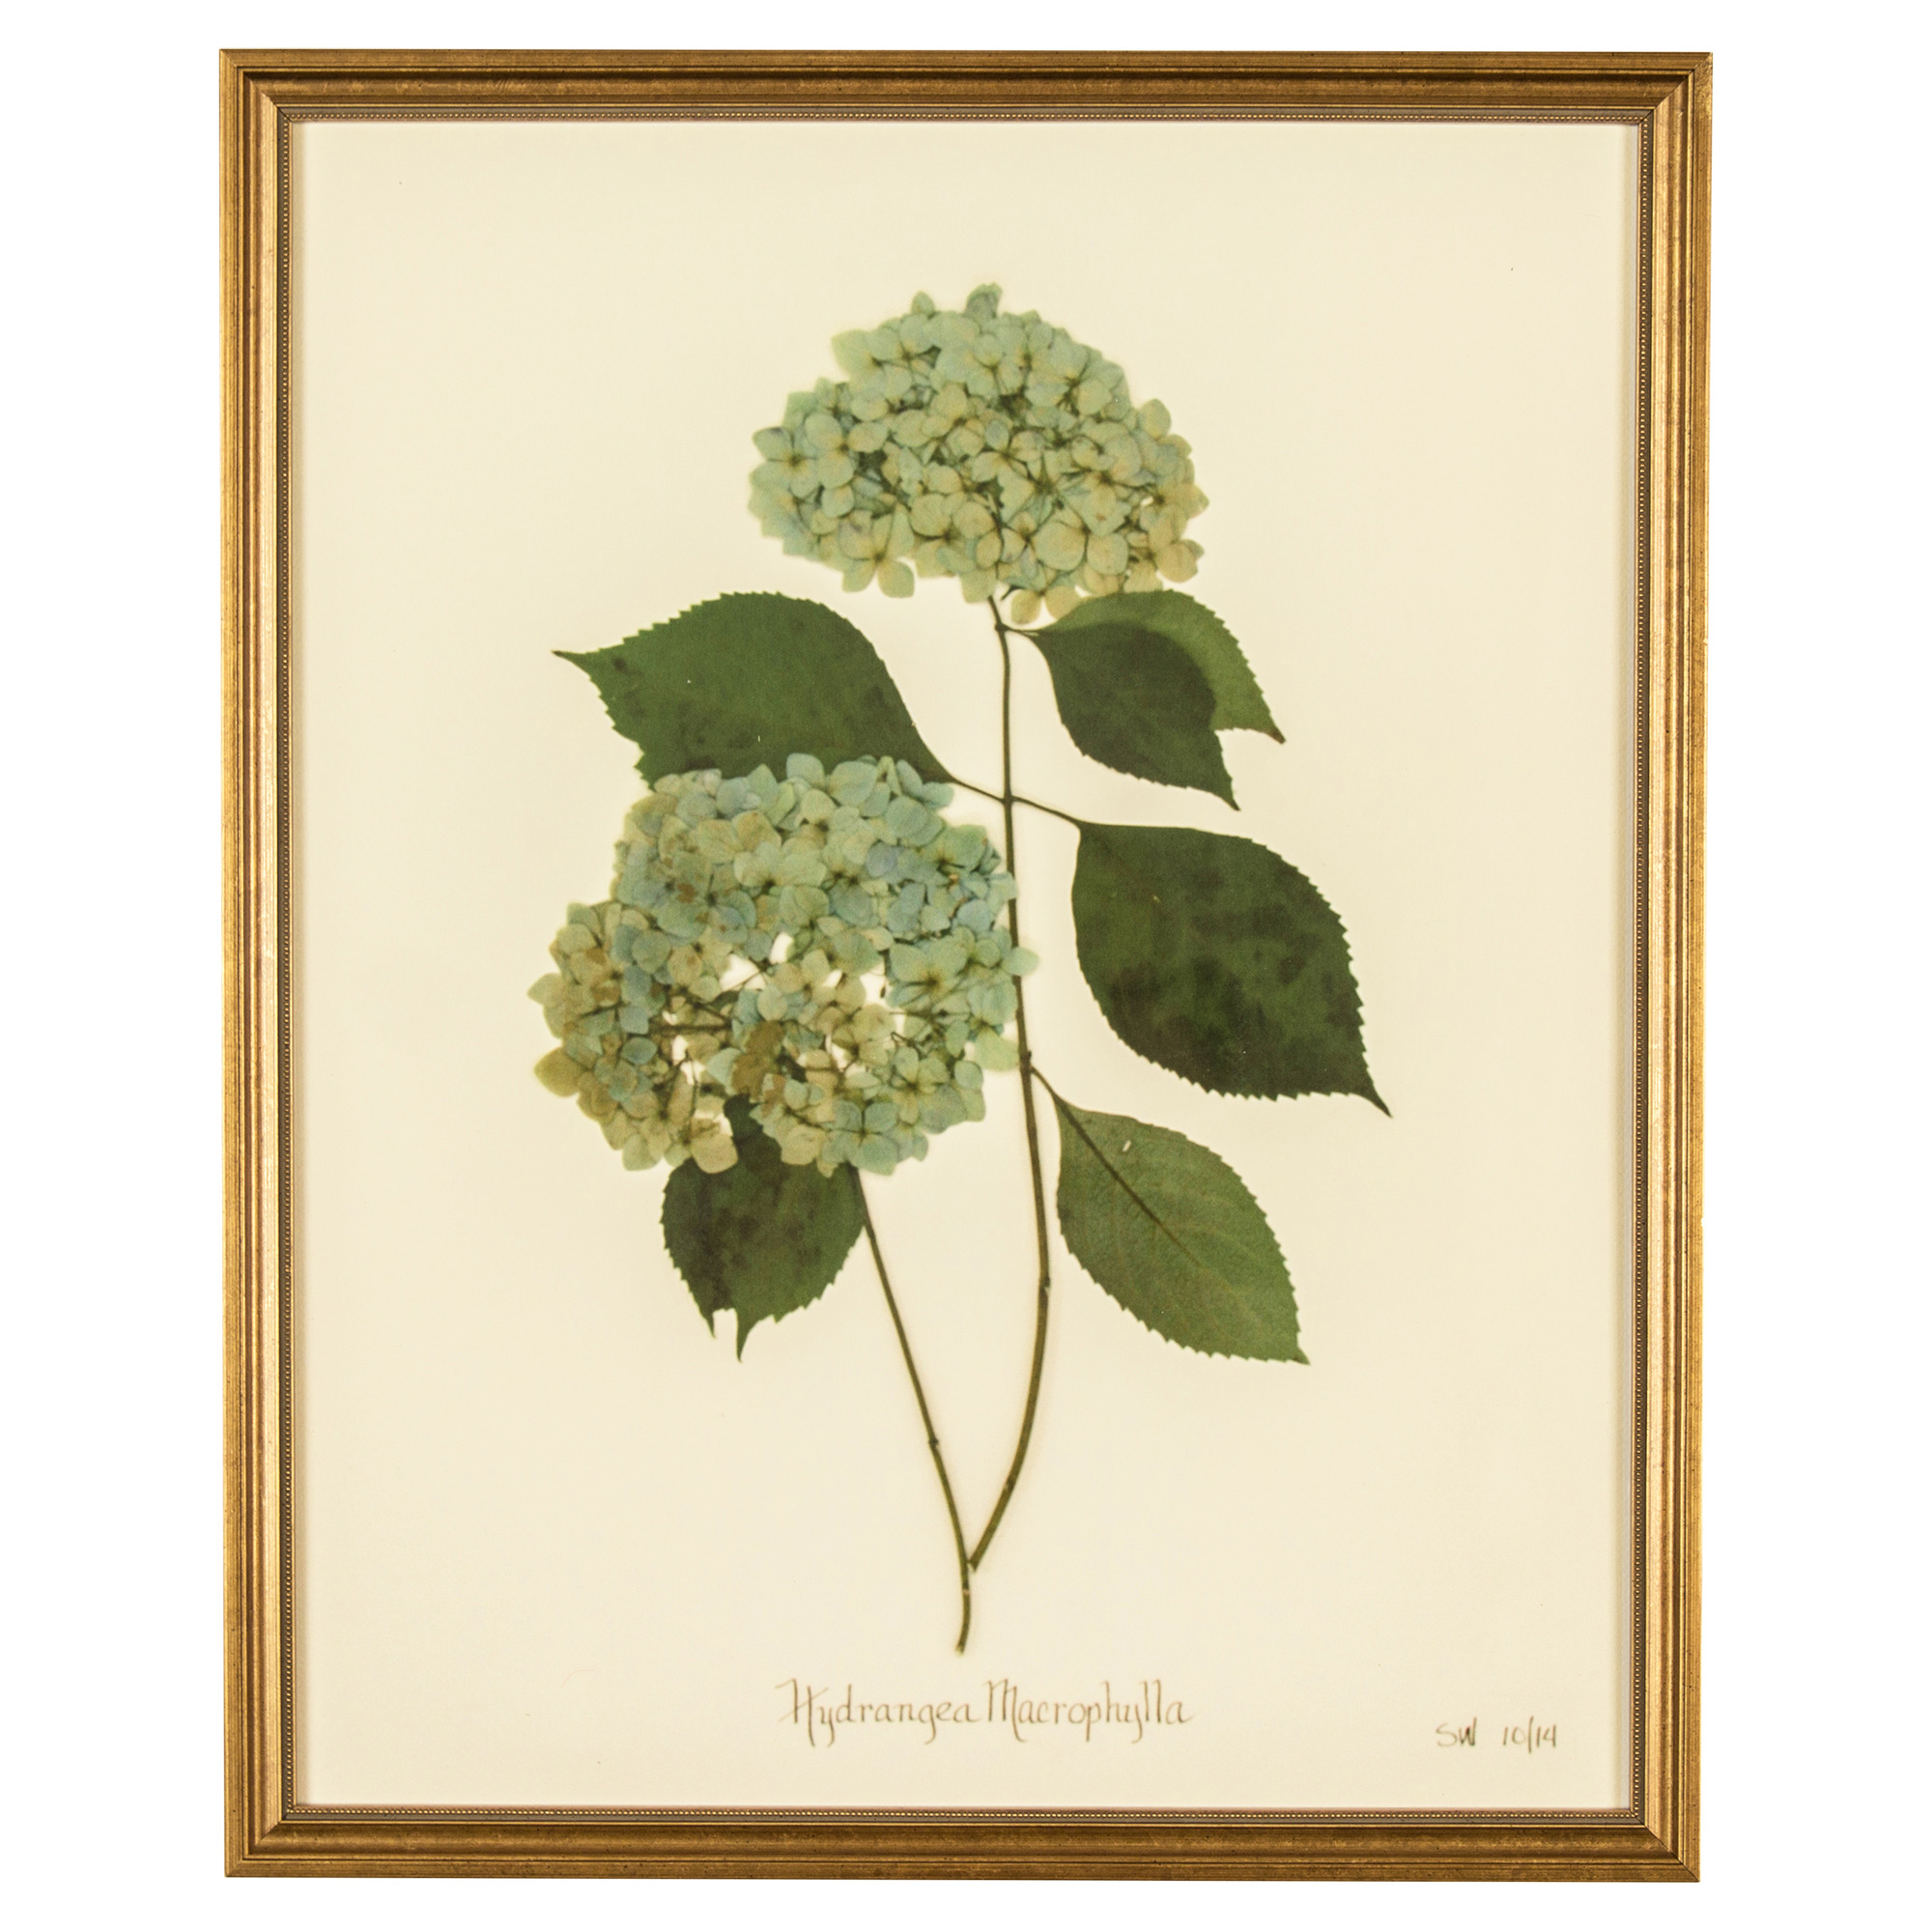 French Hydrangea Macrophylla Print Botanical Framed Wall Art - II